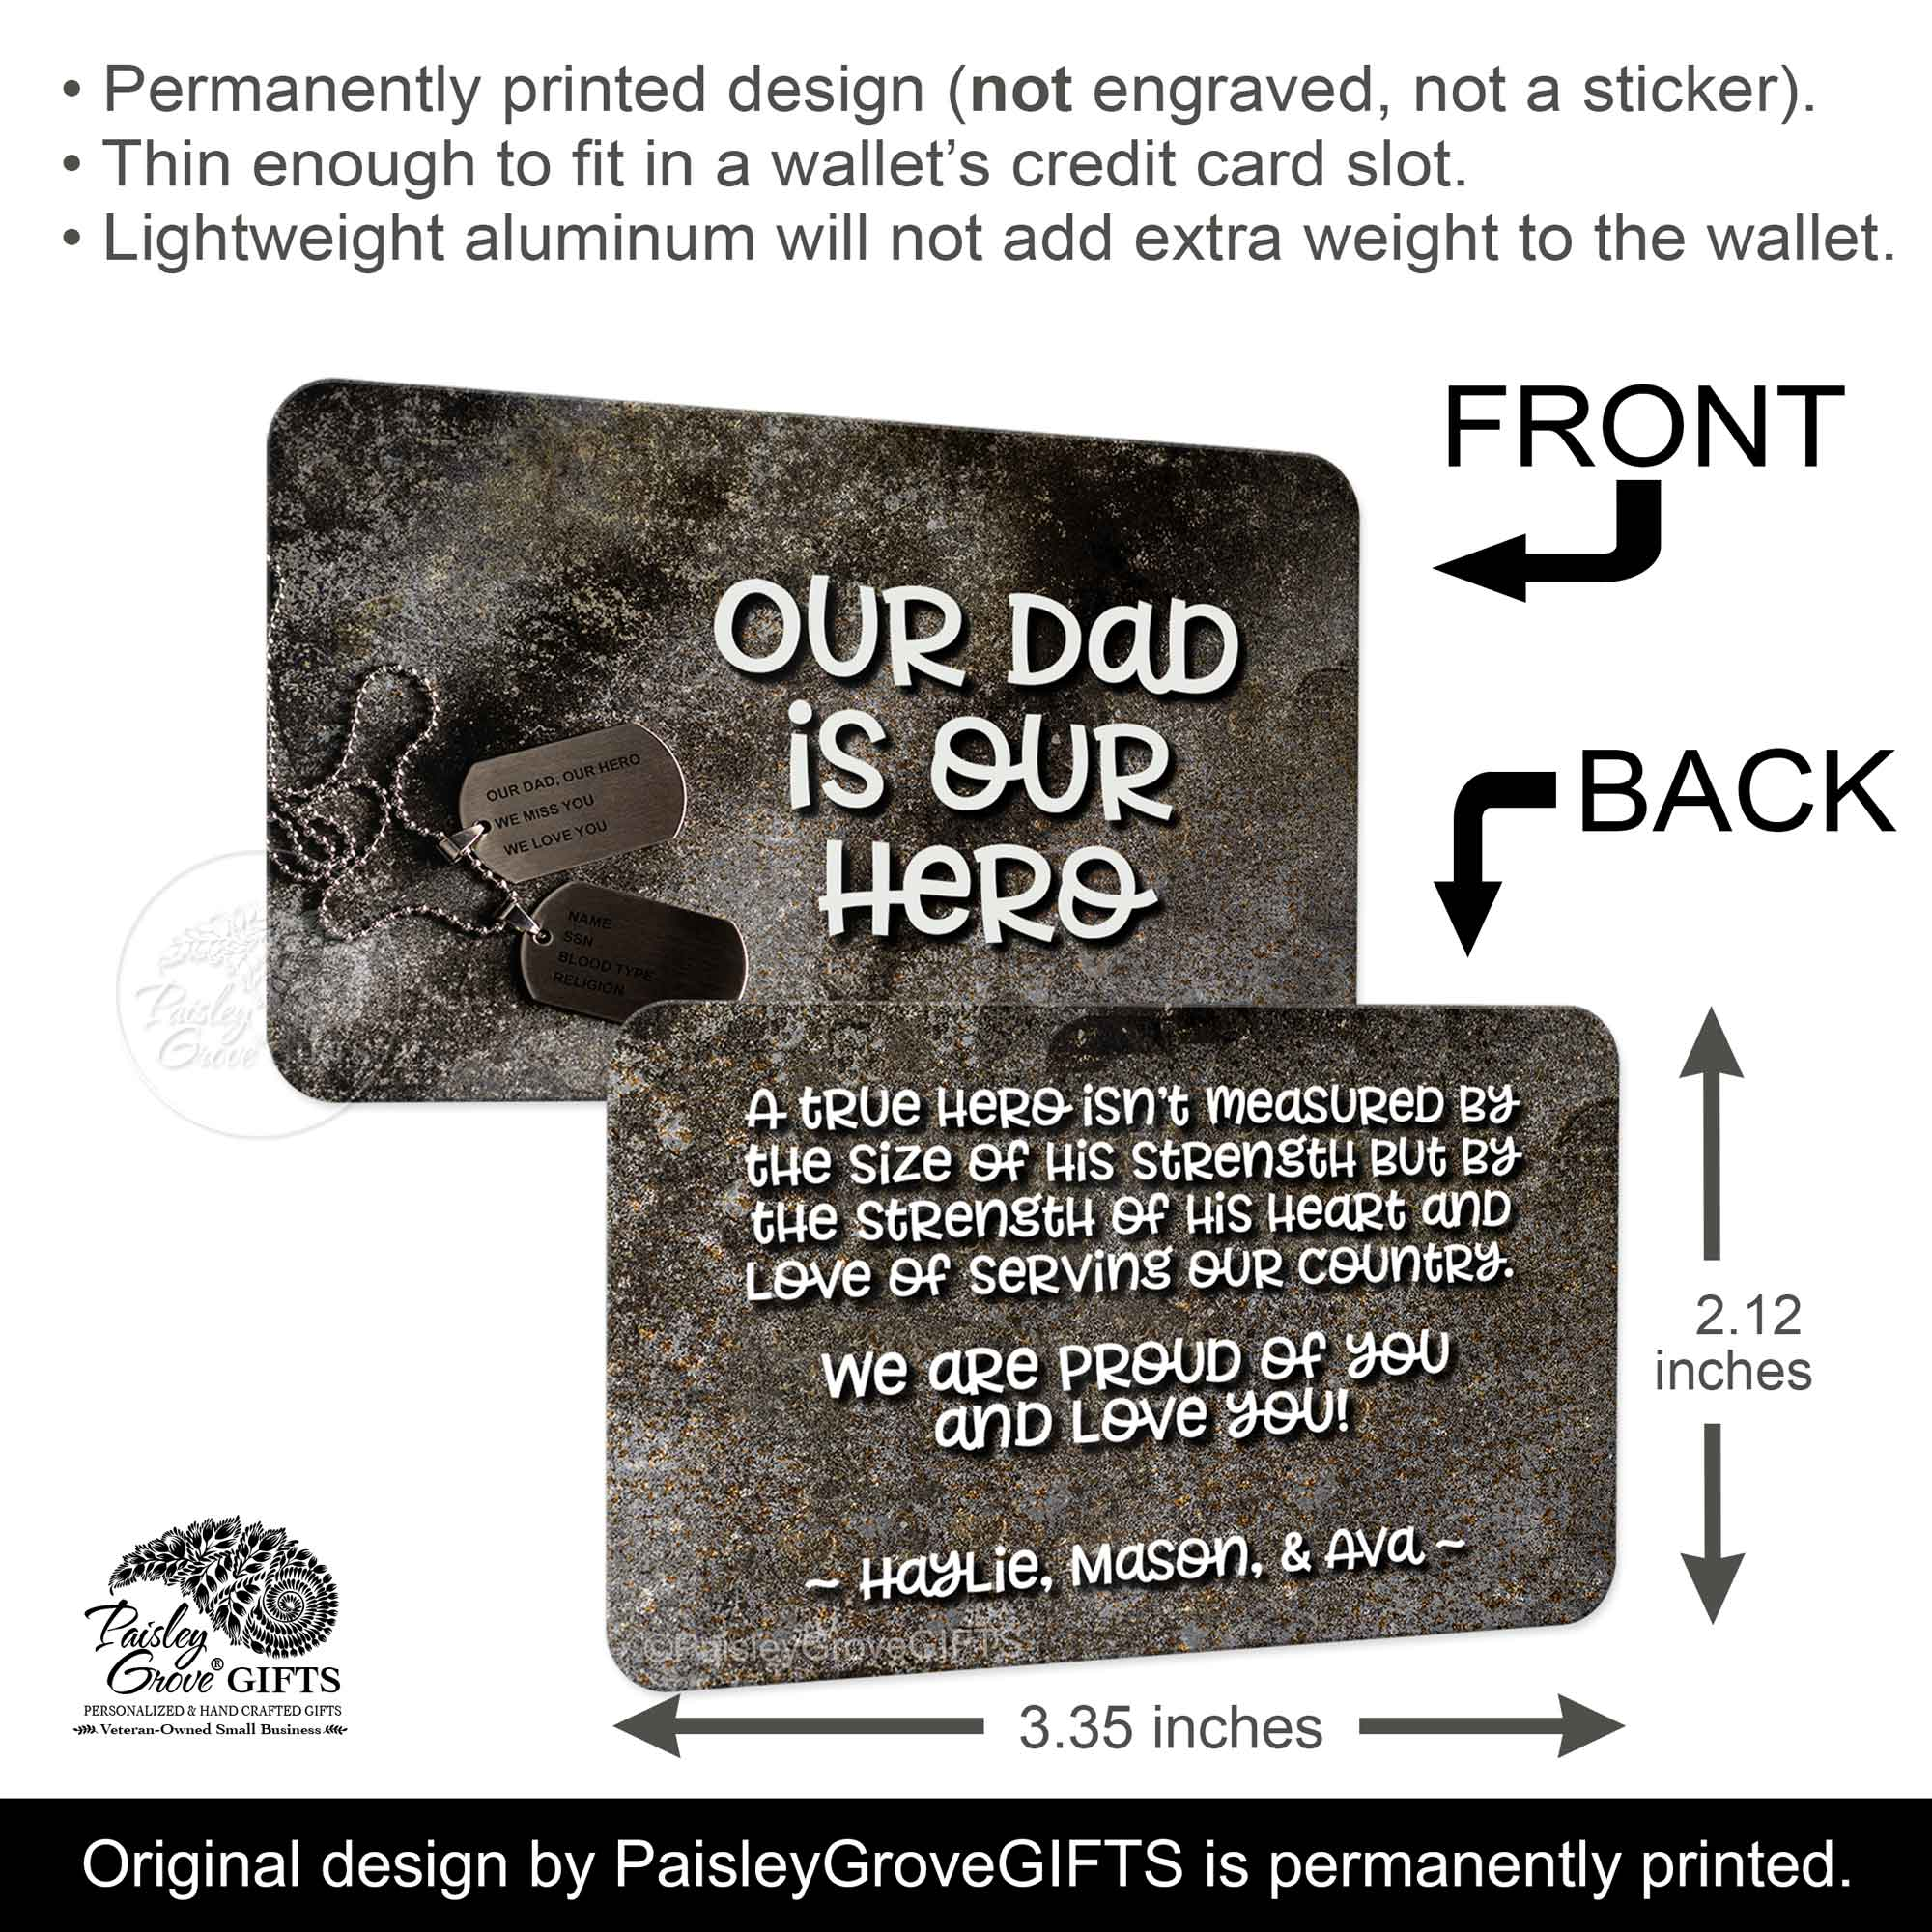 CopyrightPaisleyGroveGIFTS S601a2 Infographics 2.12 x 3.35 inches wallet insert card for active duty and retired military